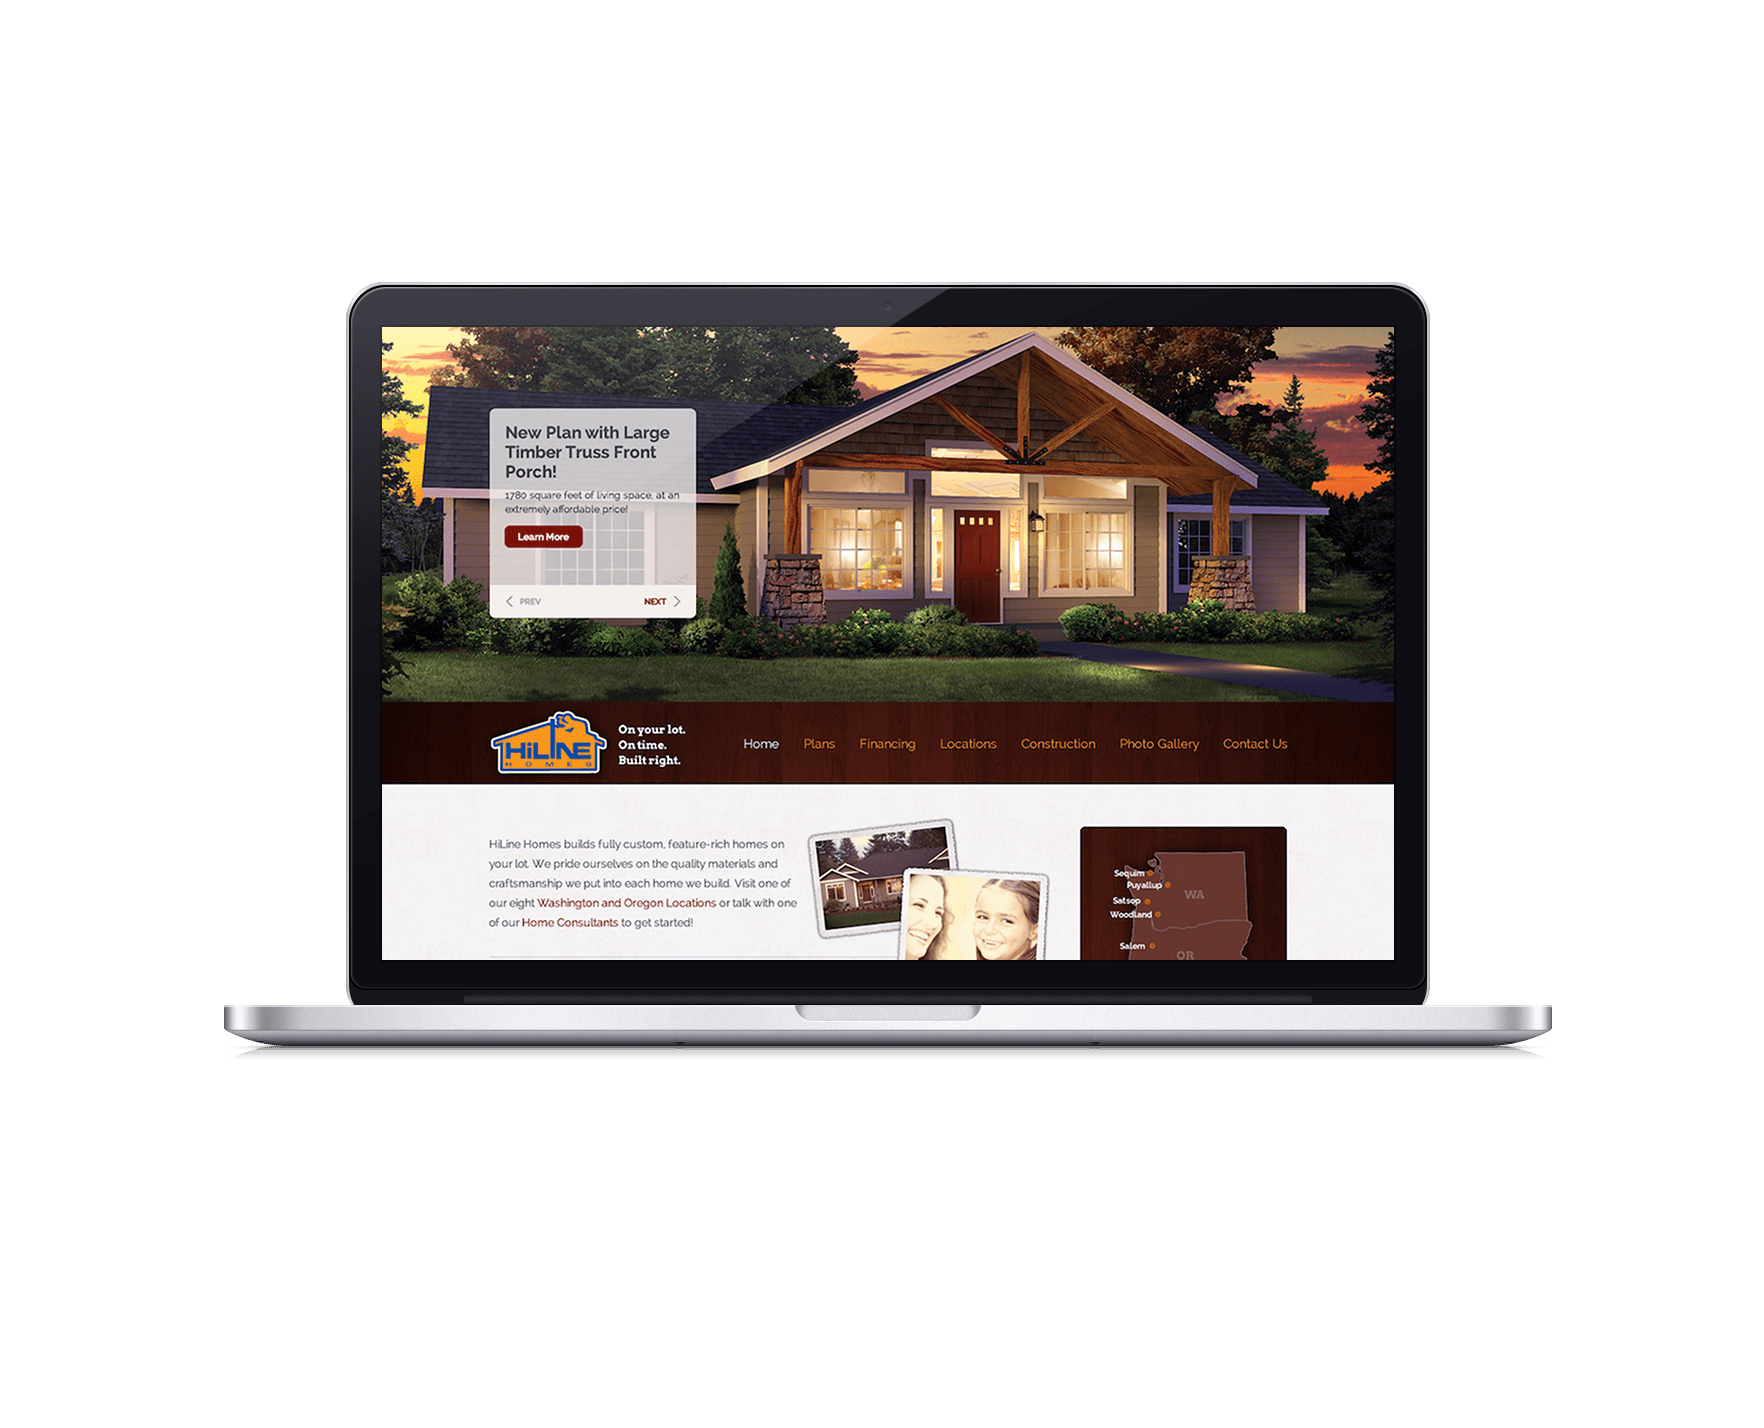 Online Marketing for Home Builders Image